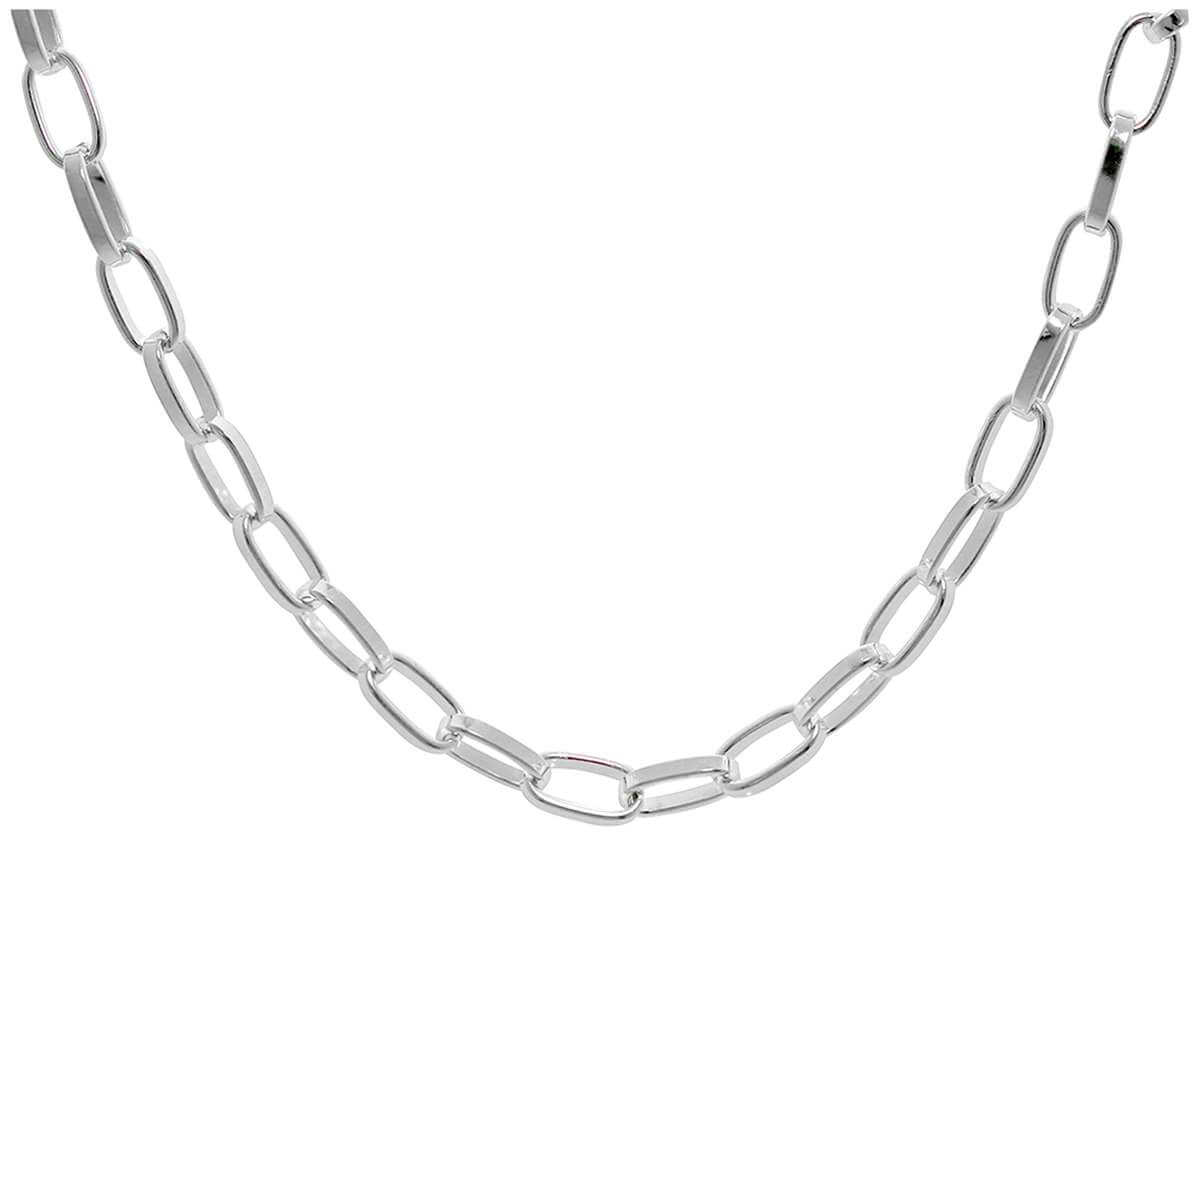 Sterling Silver Link Chain Adjustable Necklace 16 - 18 Inches